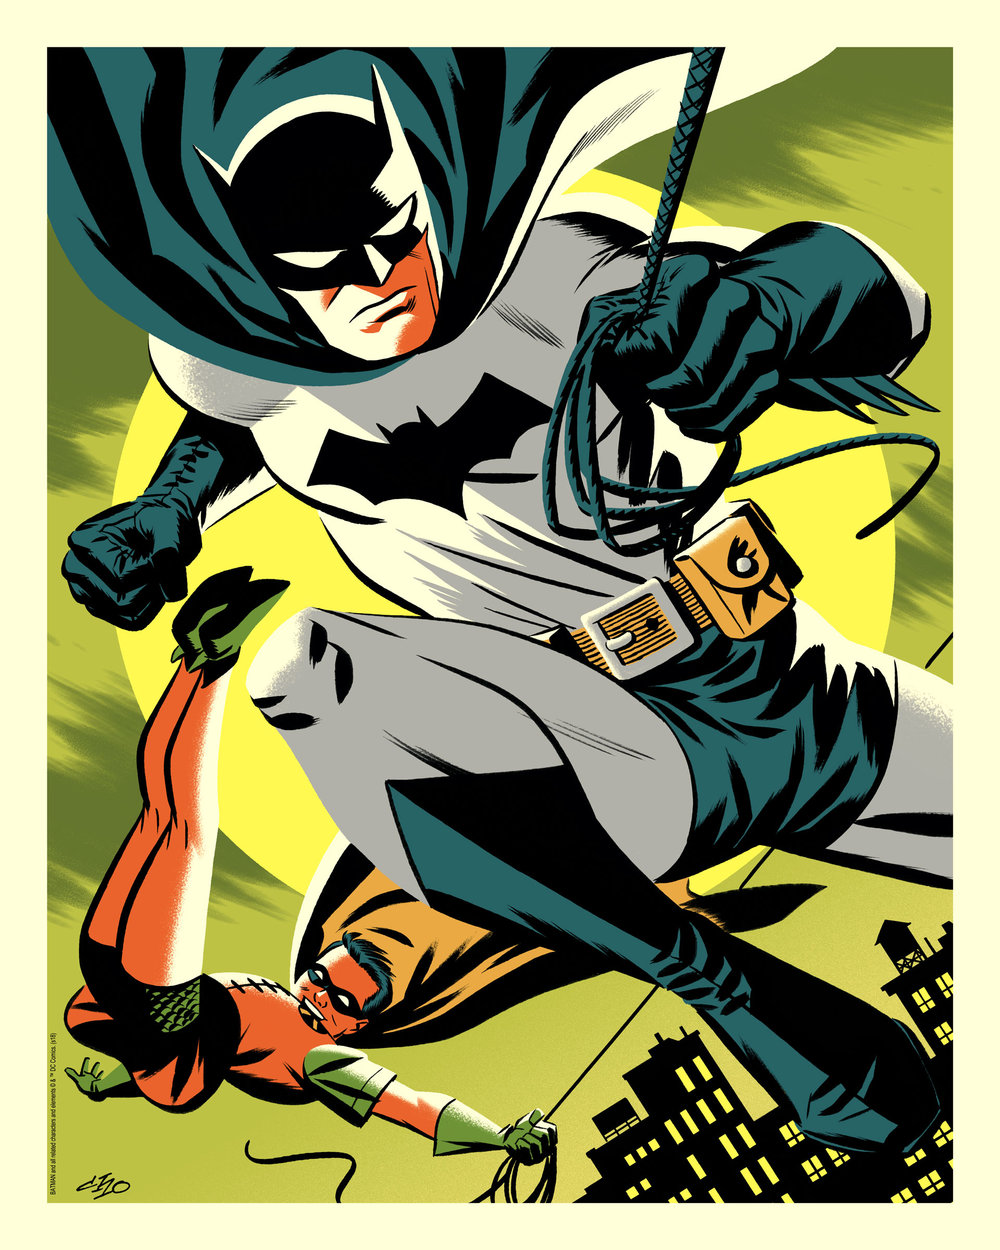 "Michael Cho ""Batman & Robin"" Bottleneck variant lithograph, 16 x 20 inches, numbered edition of 80, available for $30"